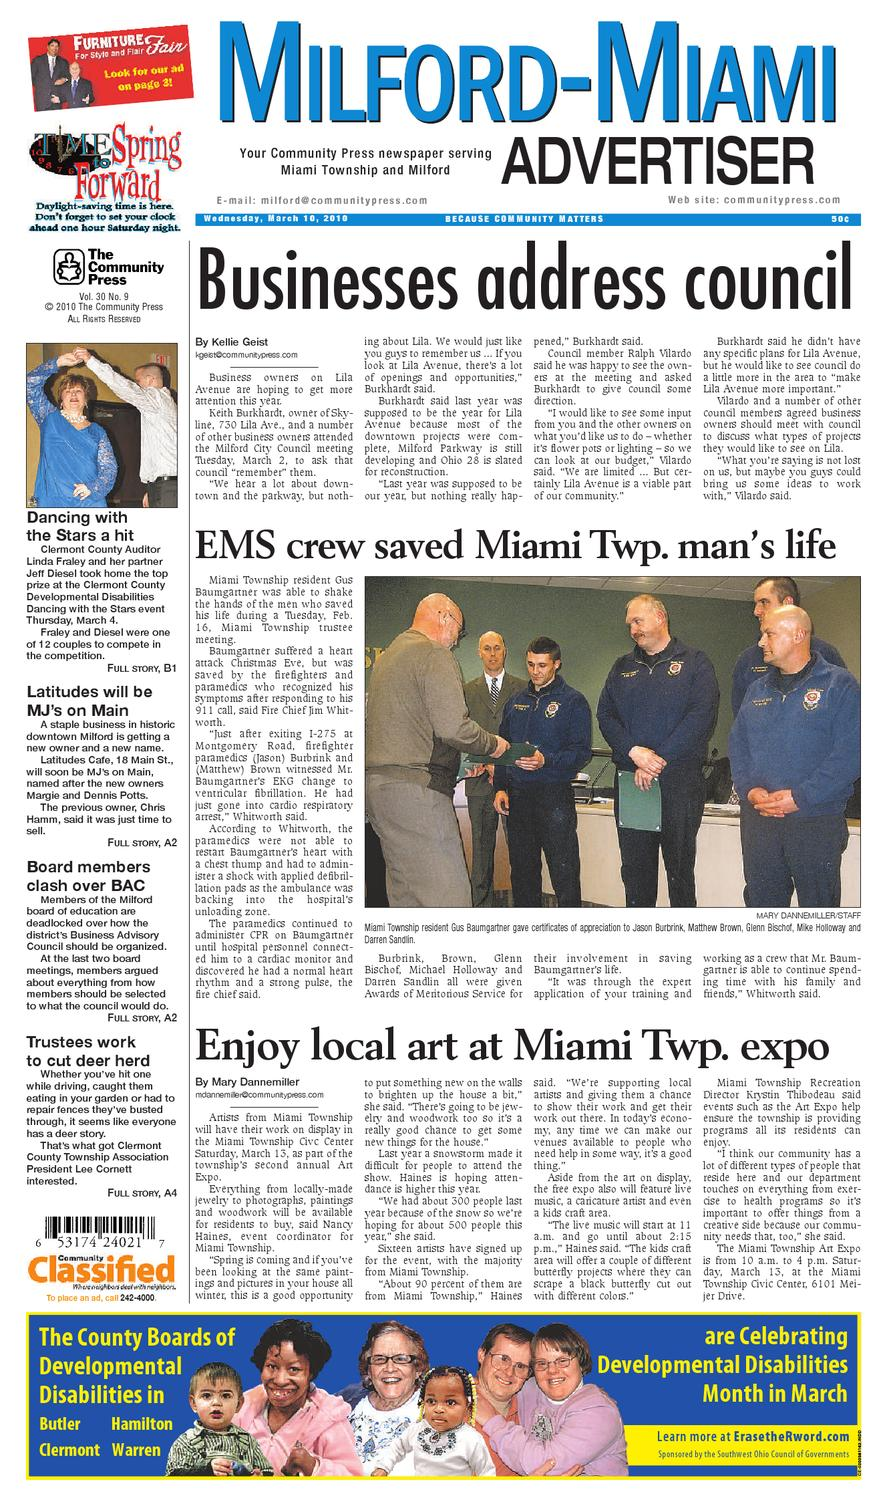 milford miami advertiser 20 by Enquirer Media   issuu